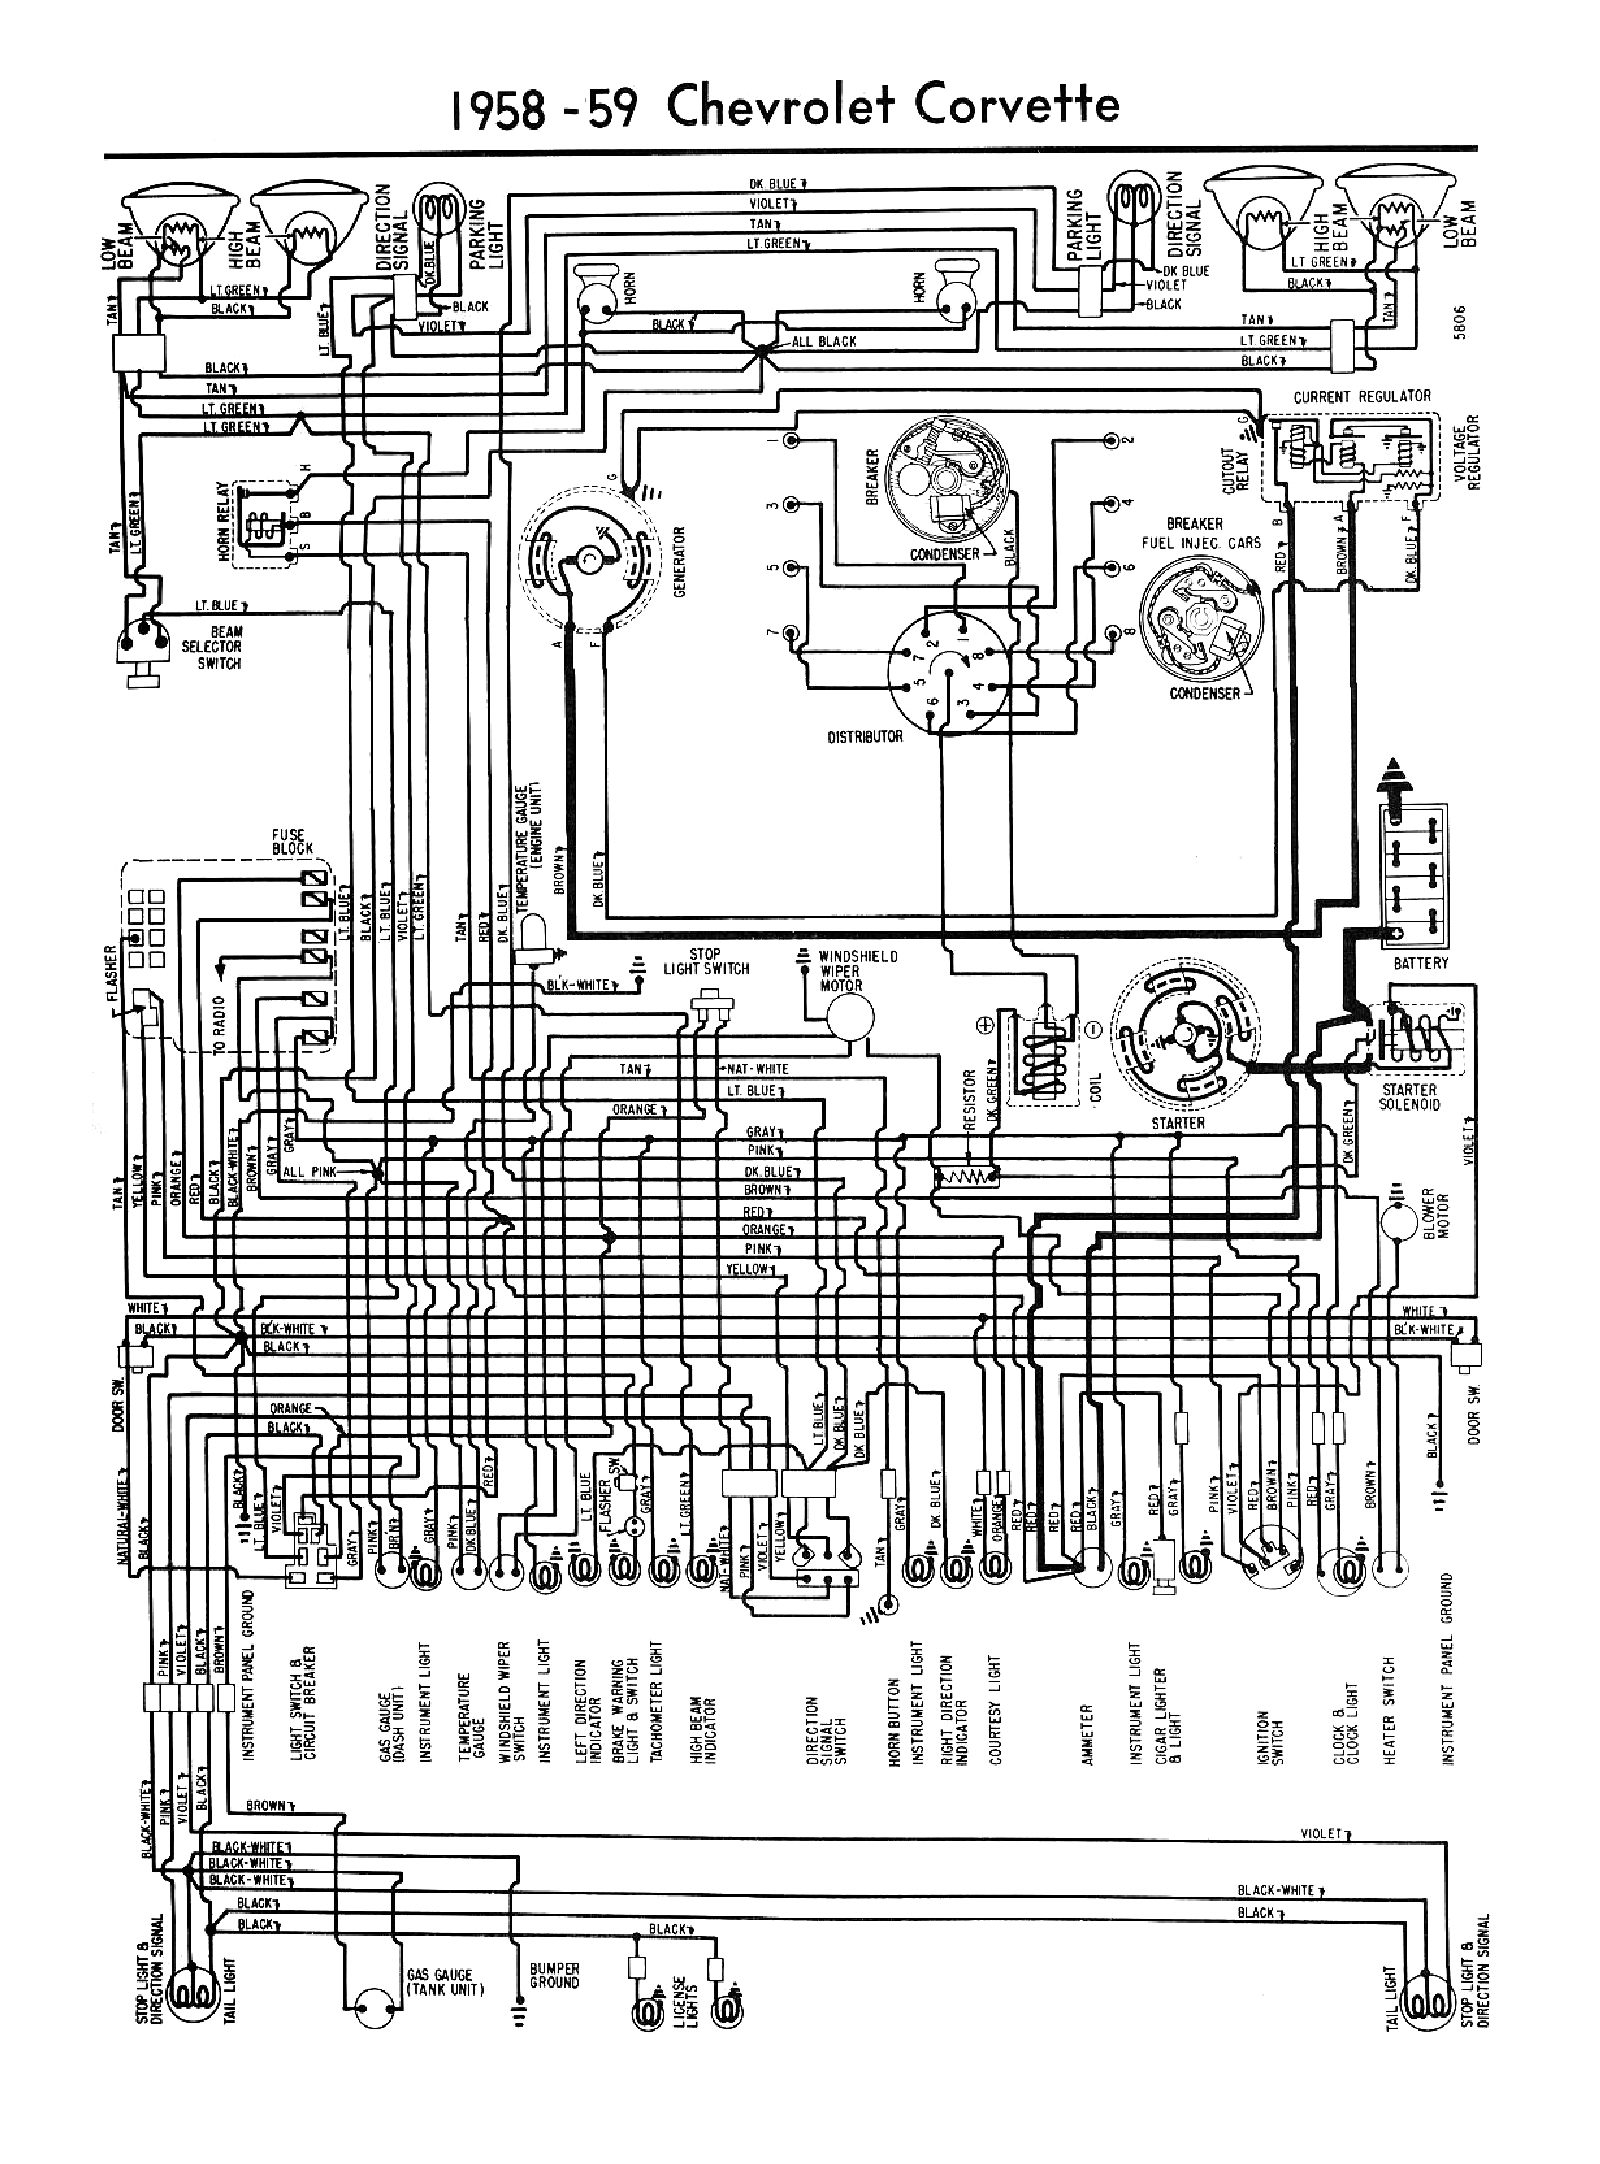 1972 Corvette Wiring Diagram Free For You 73 Chevy C10 Fuse Box Furthermore 1970 Moreover Rh 44 Jennifer Retzke De 1971 A C